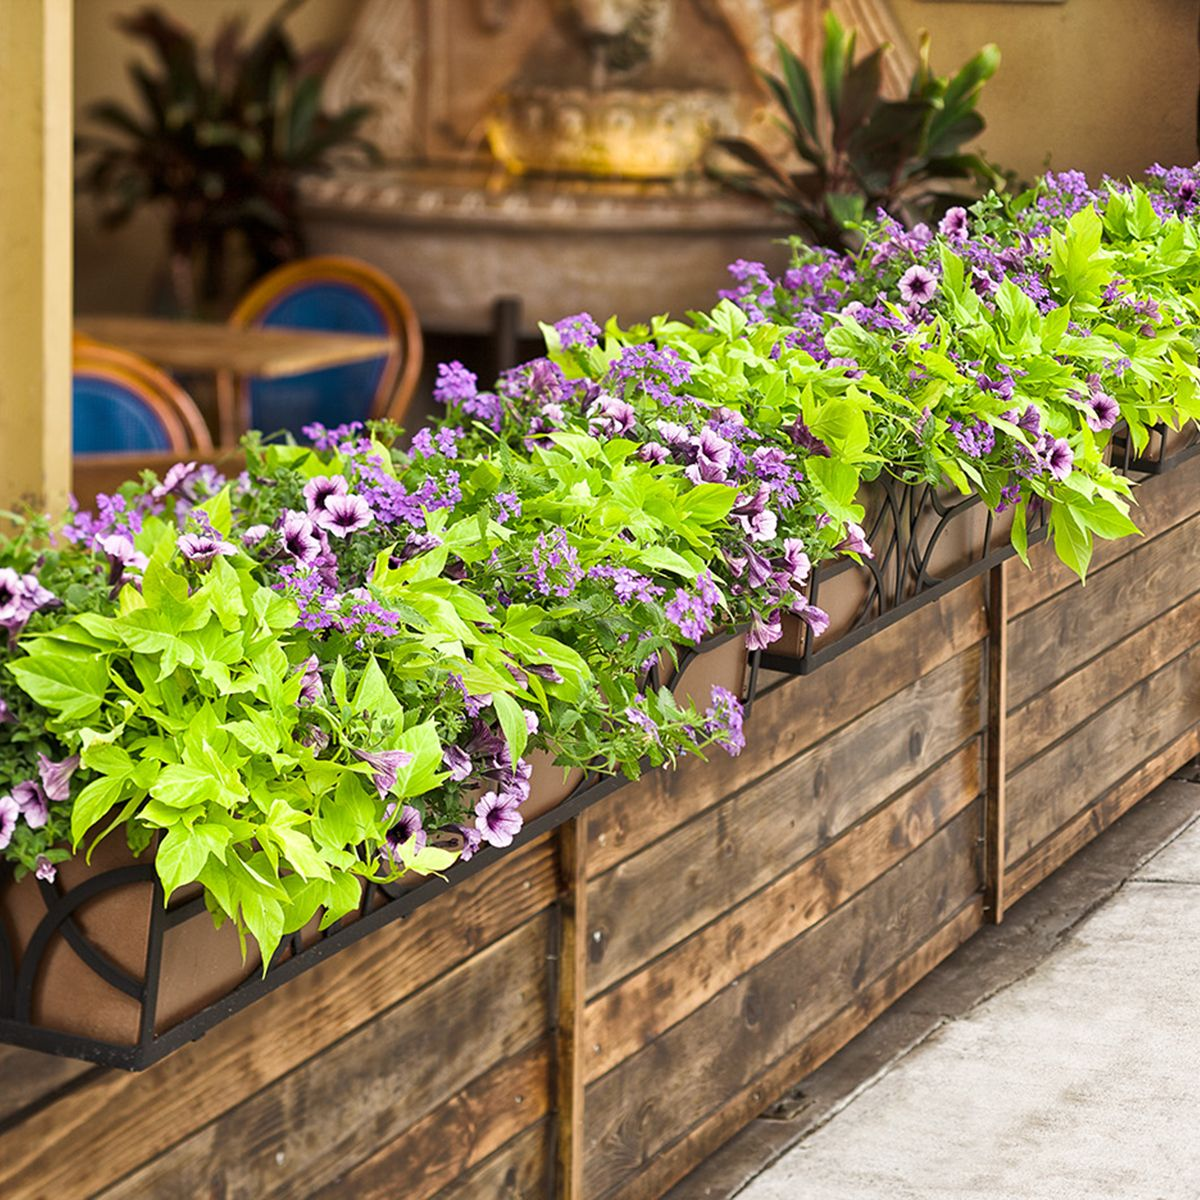 15 Creative Garden Ideas You Can Steal: A Low Wall, Topped By Bright Window Boxes Can Bring